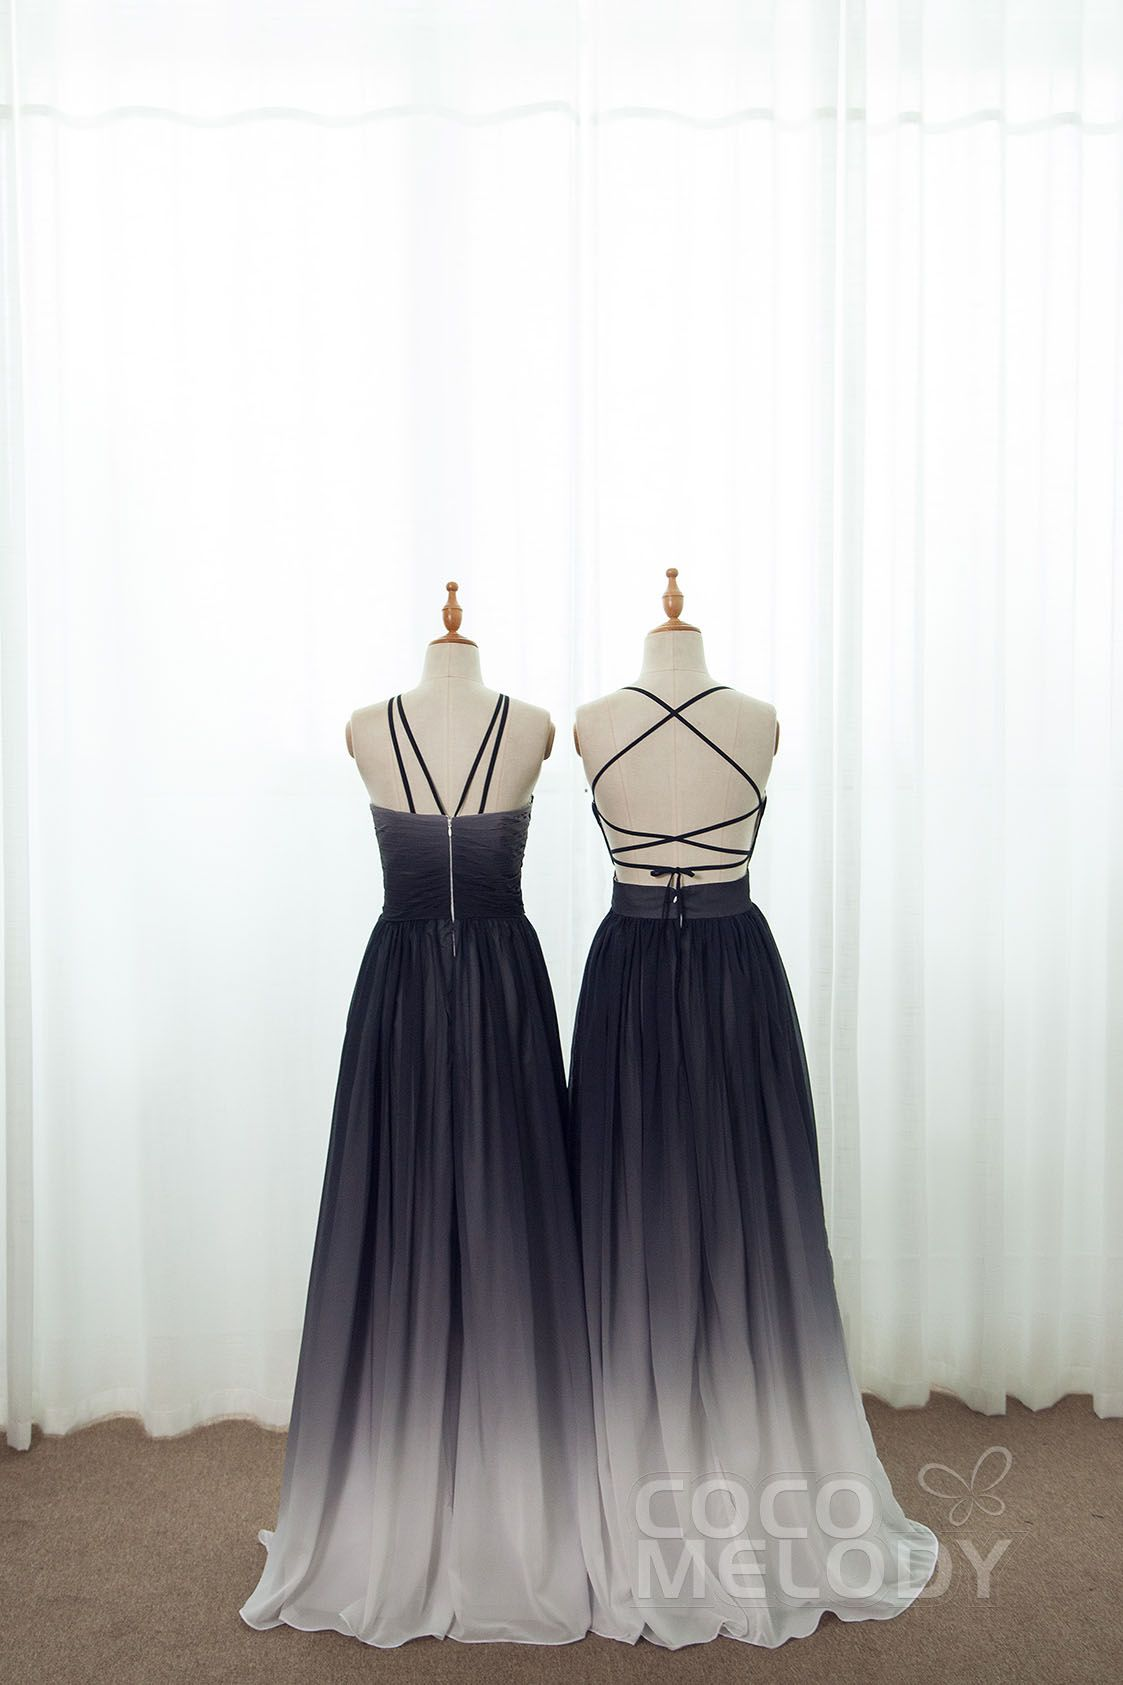 Black ombre shade bridesmaid dresses for your maids all sizes black ombre shade bridesmaid dresses for your maids all sizes and customization option ombrellifo Gallery